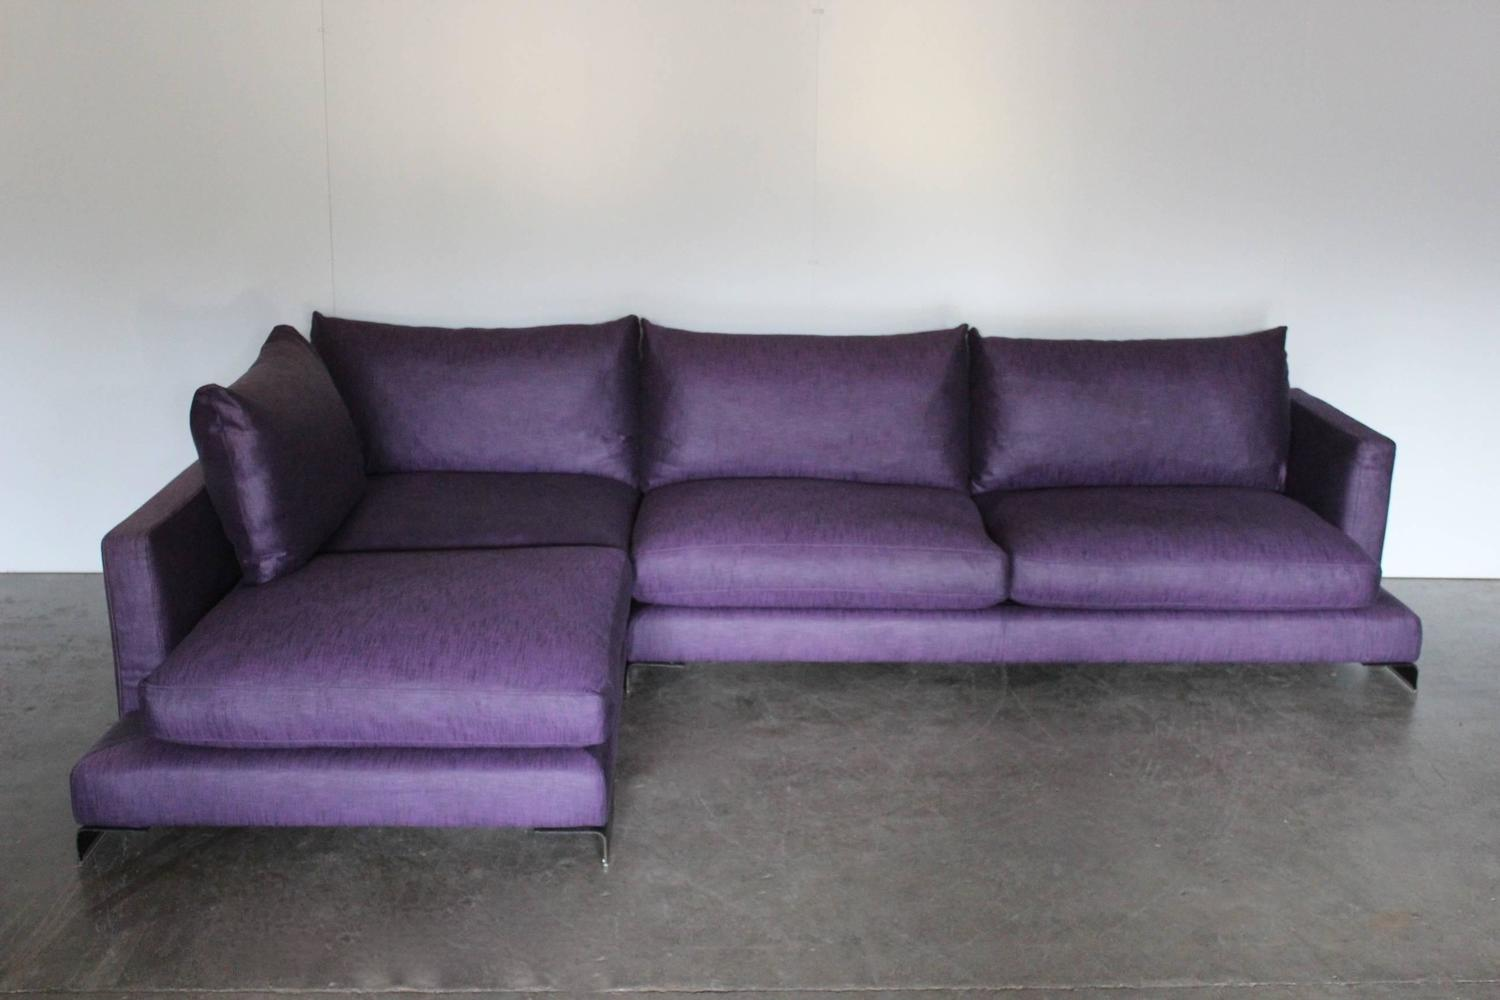 flexform long island l shape sofa in purple and black linen for sale at 1stdibs. Black Bedroom Furniture Sets. Home Design Ideas